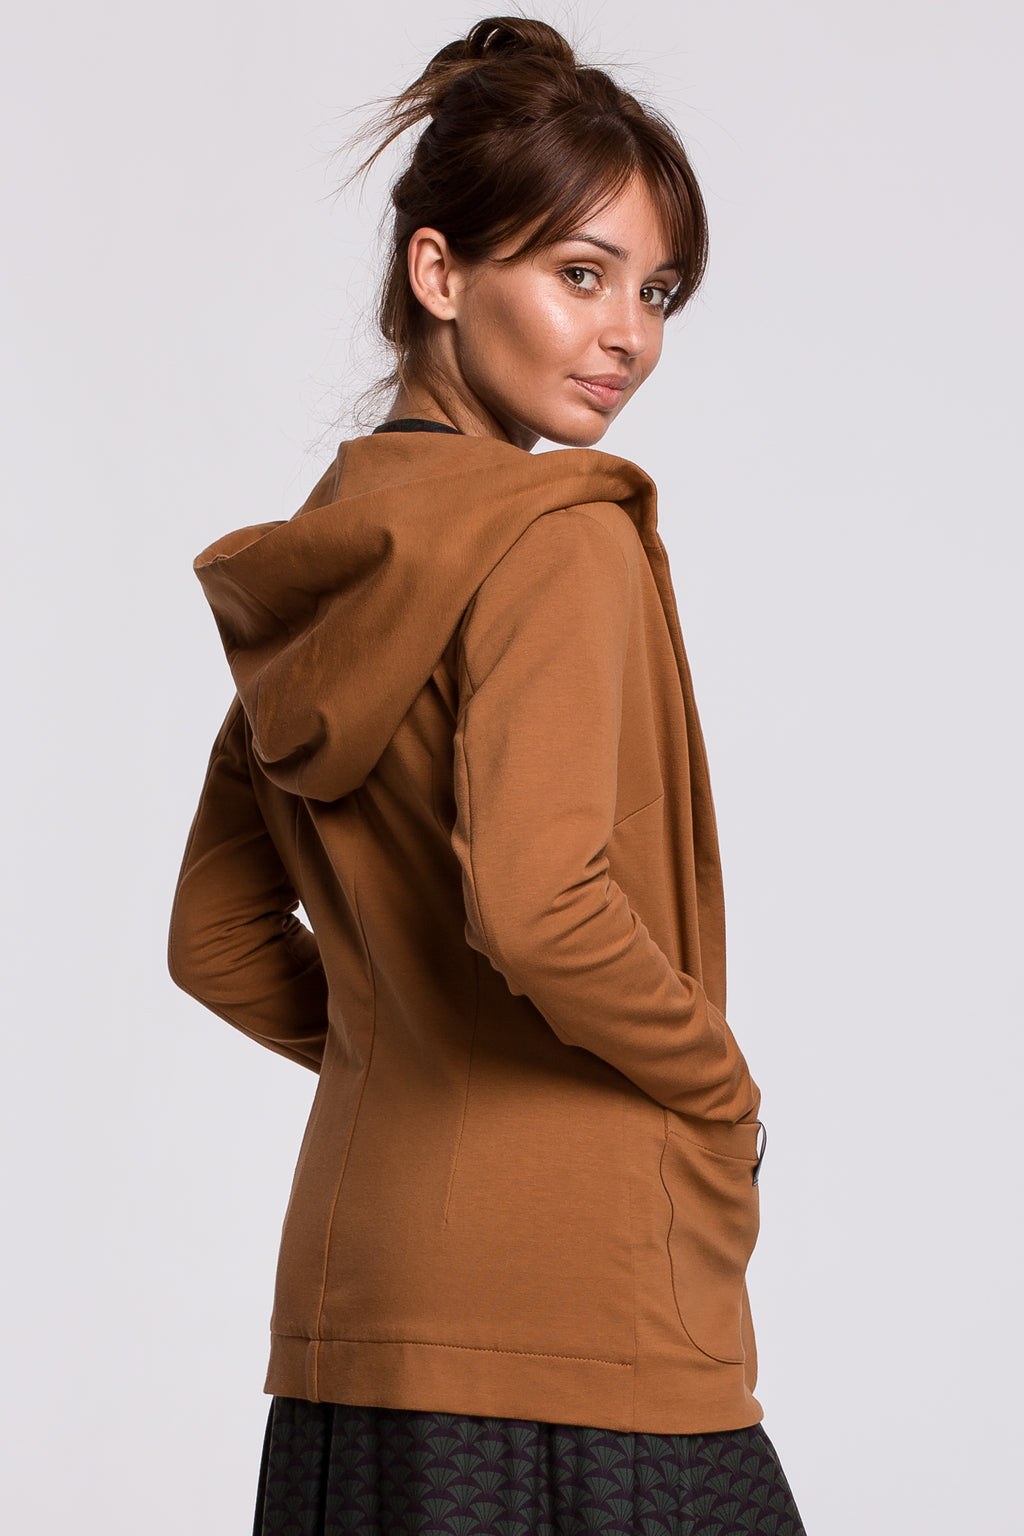 Caramel Cotton Jacket With A Hood - So Chic Boutique